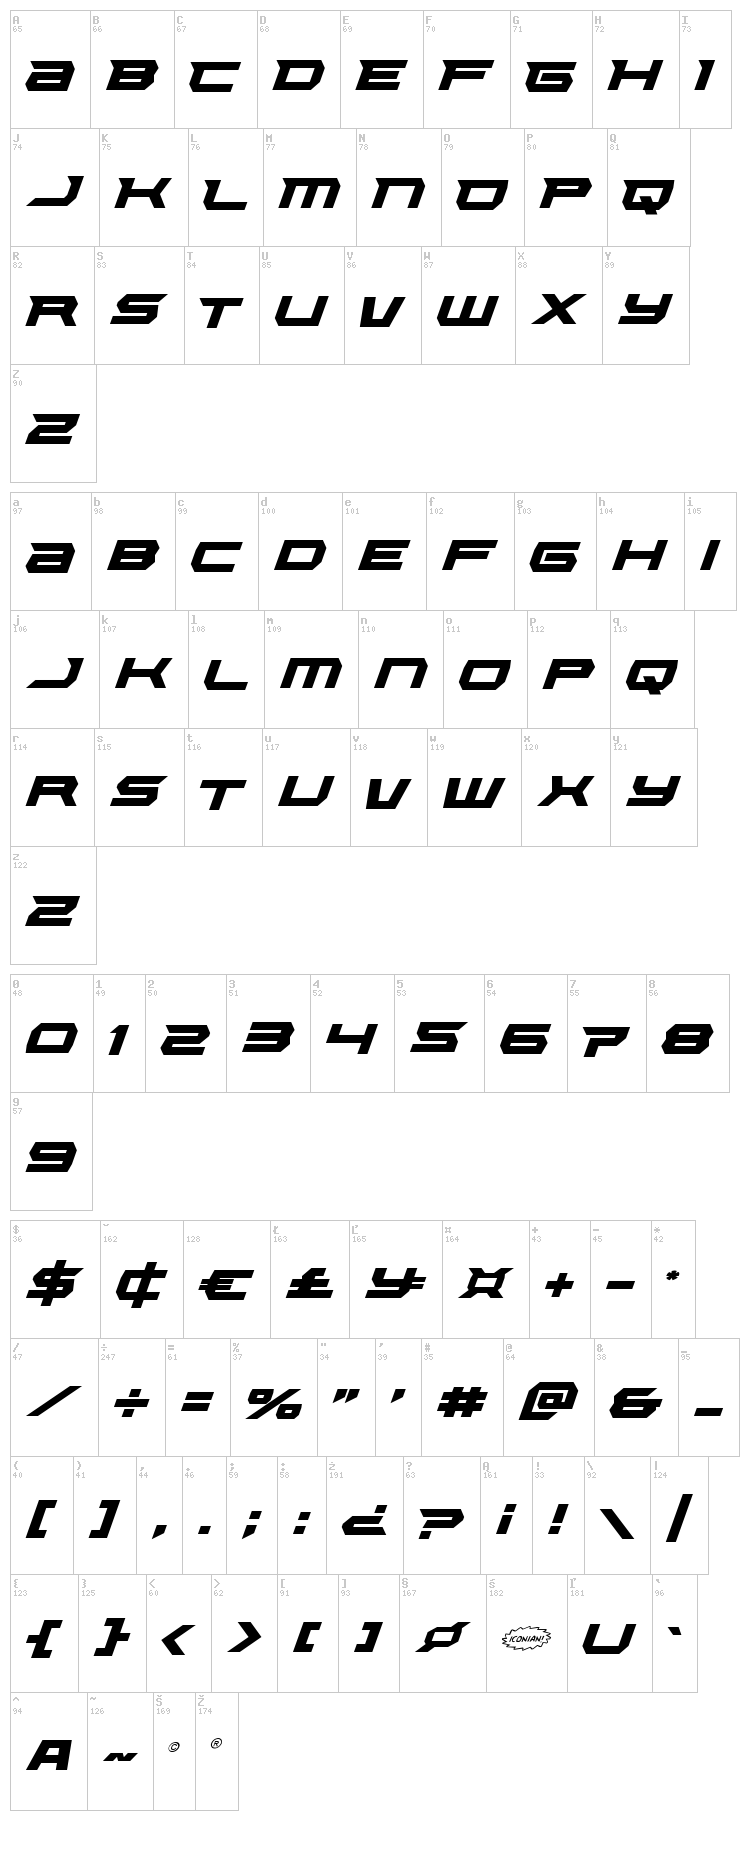 Lethal Force font map